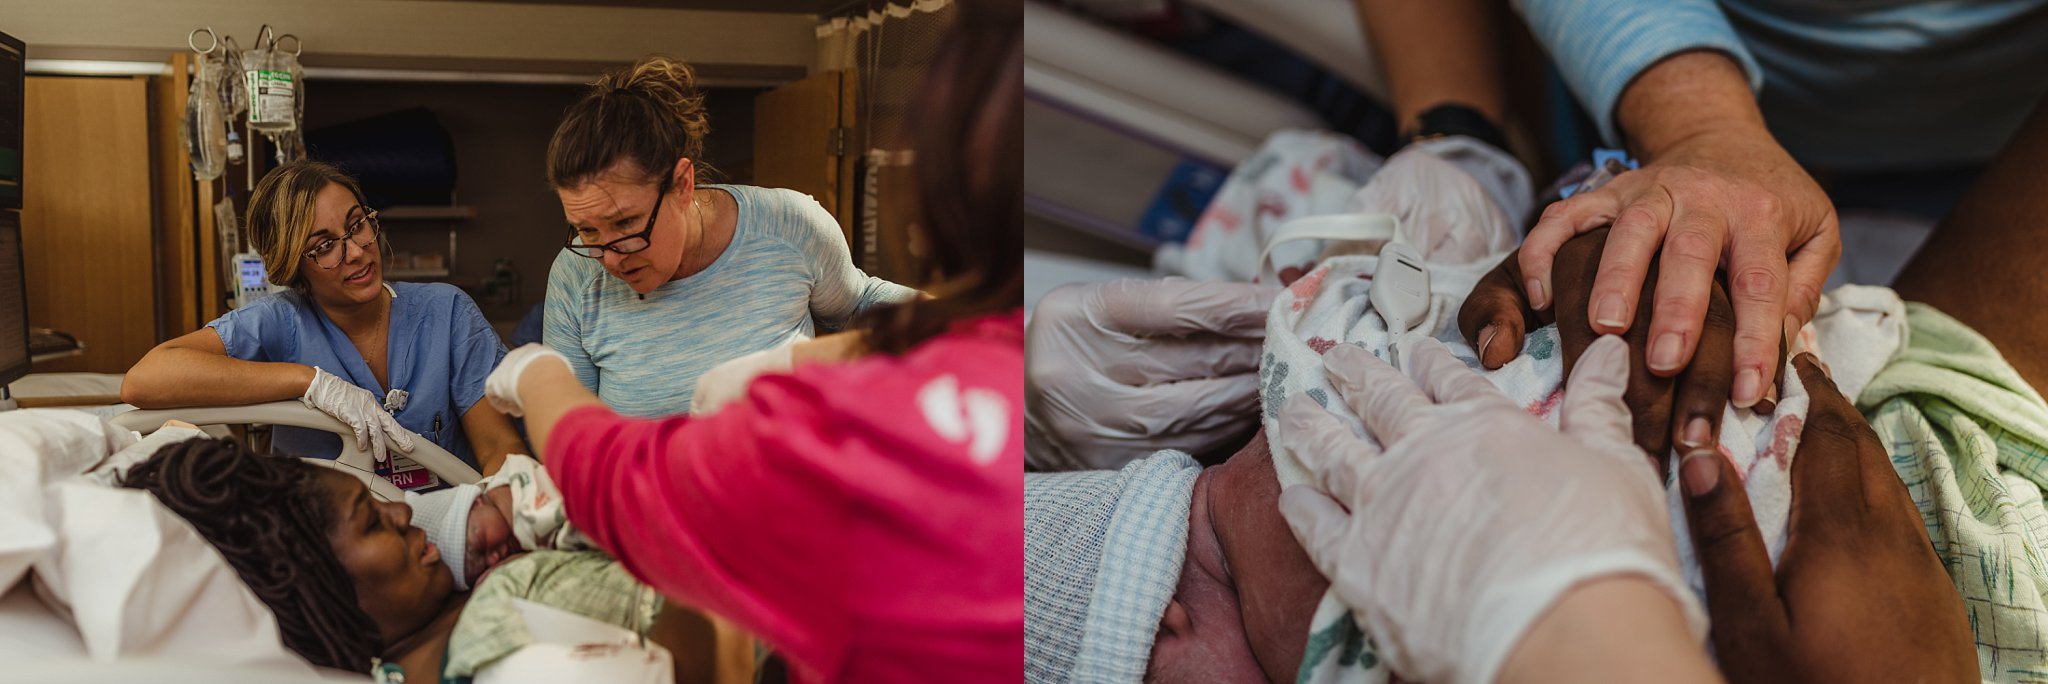 Dr Bochantin congratulates mother on delivery of her baby boy.